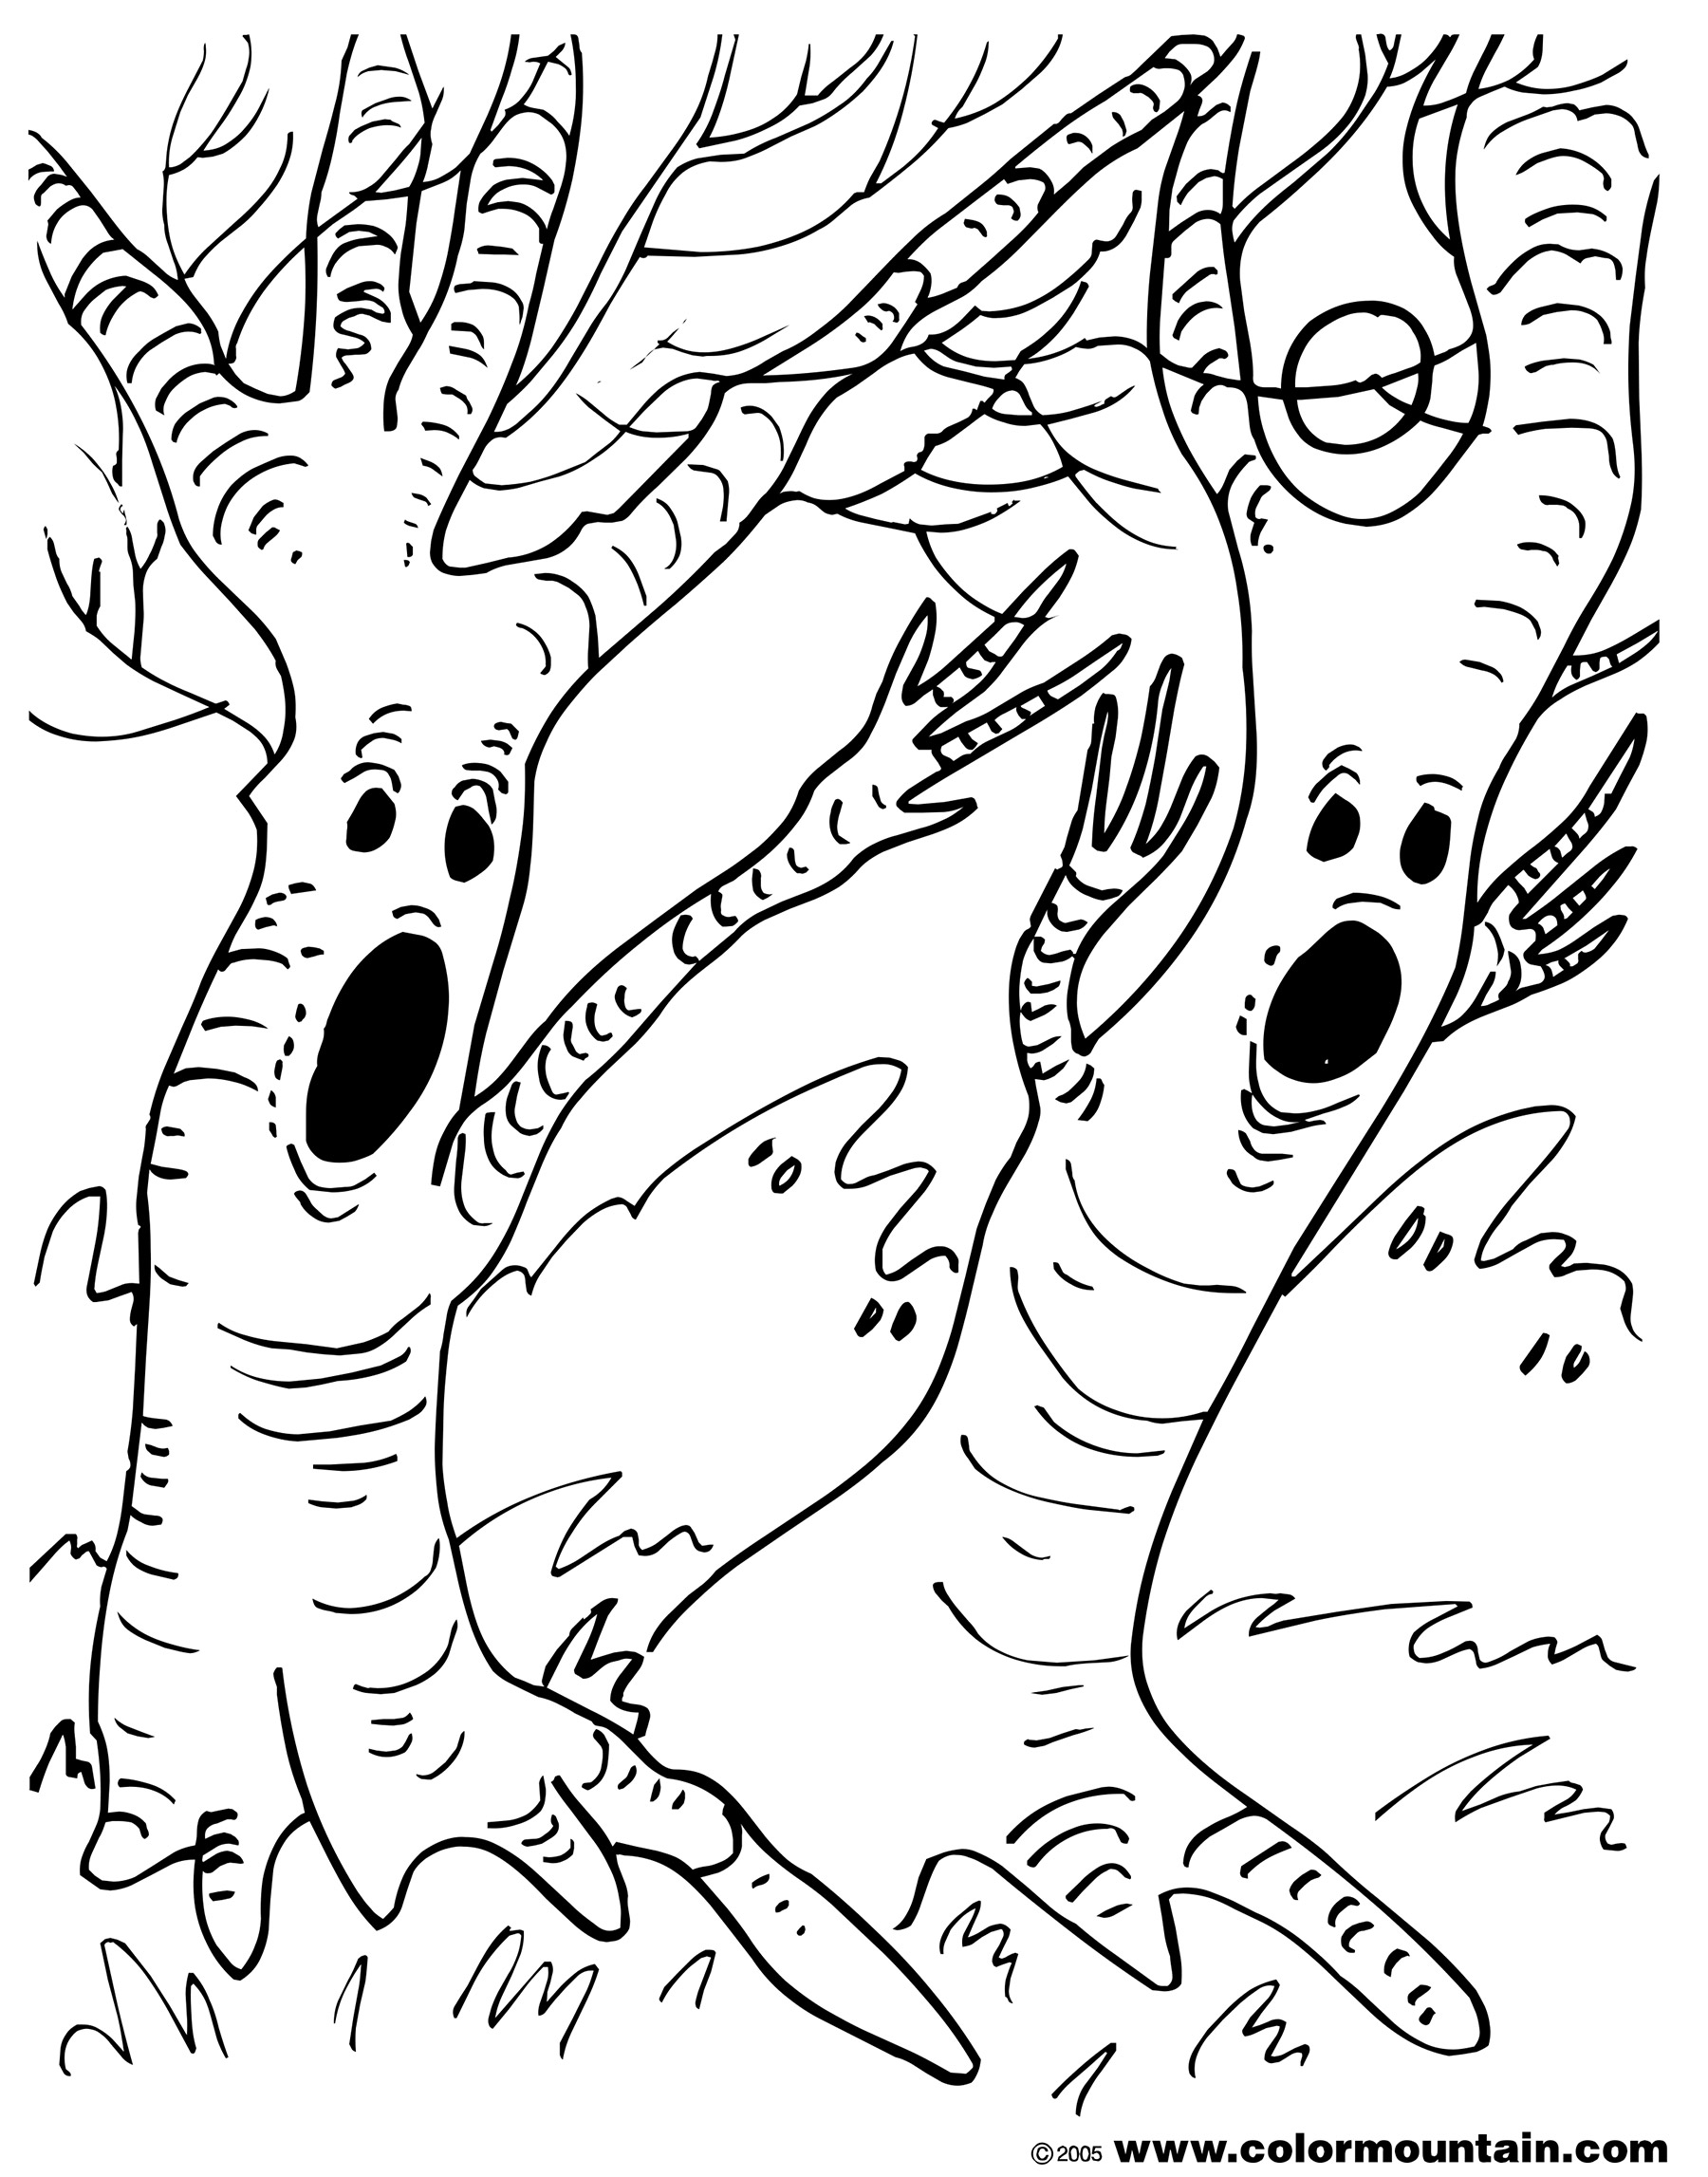 coloring halloween tree yucca flats nm wenchkin39s coloring pages halloween tree tree coloring halloween